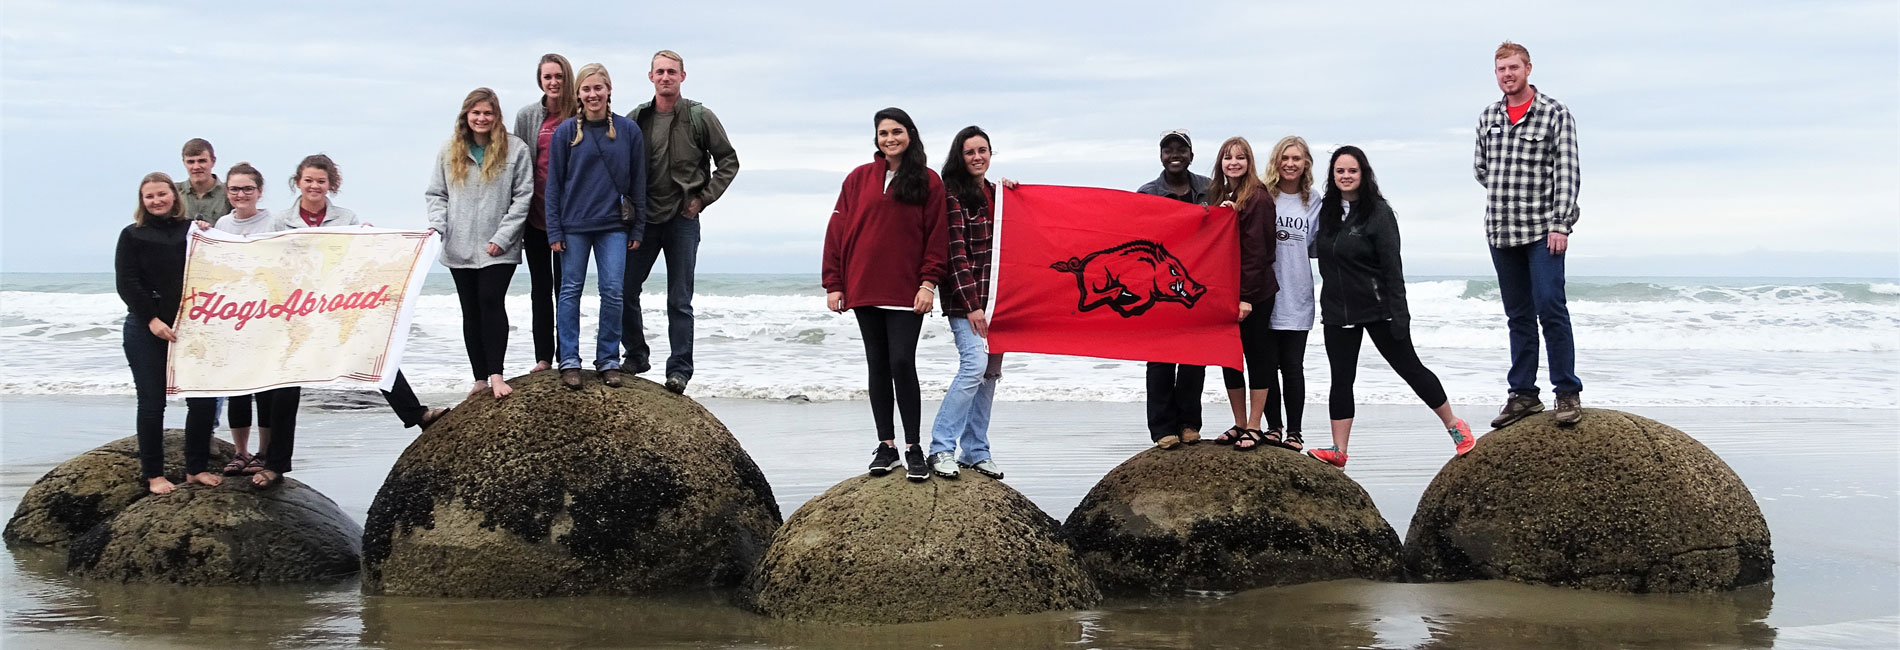 Students posing on the beach in New Zealand